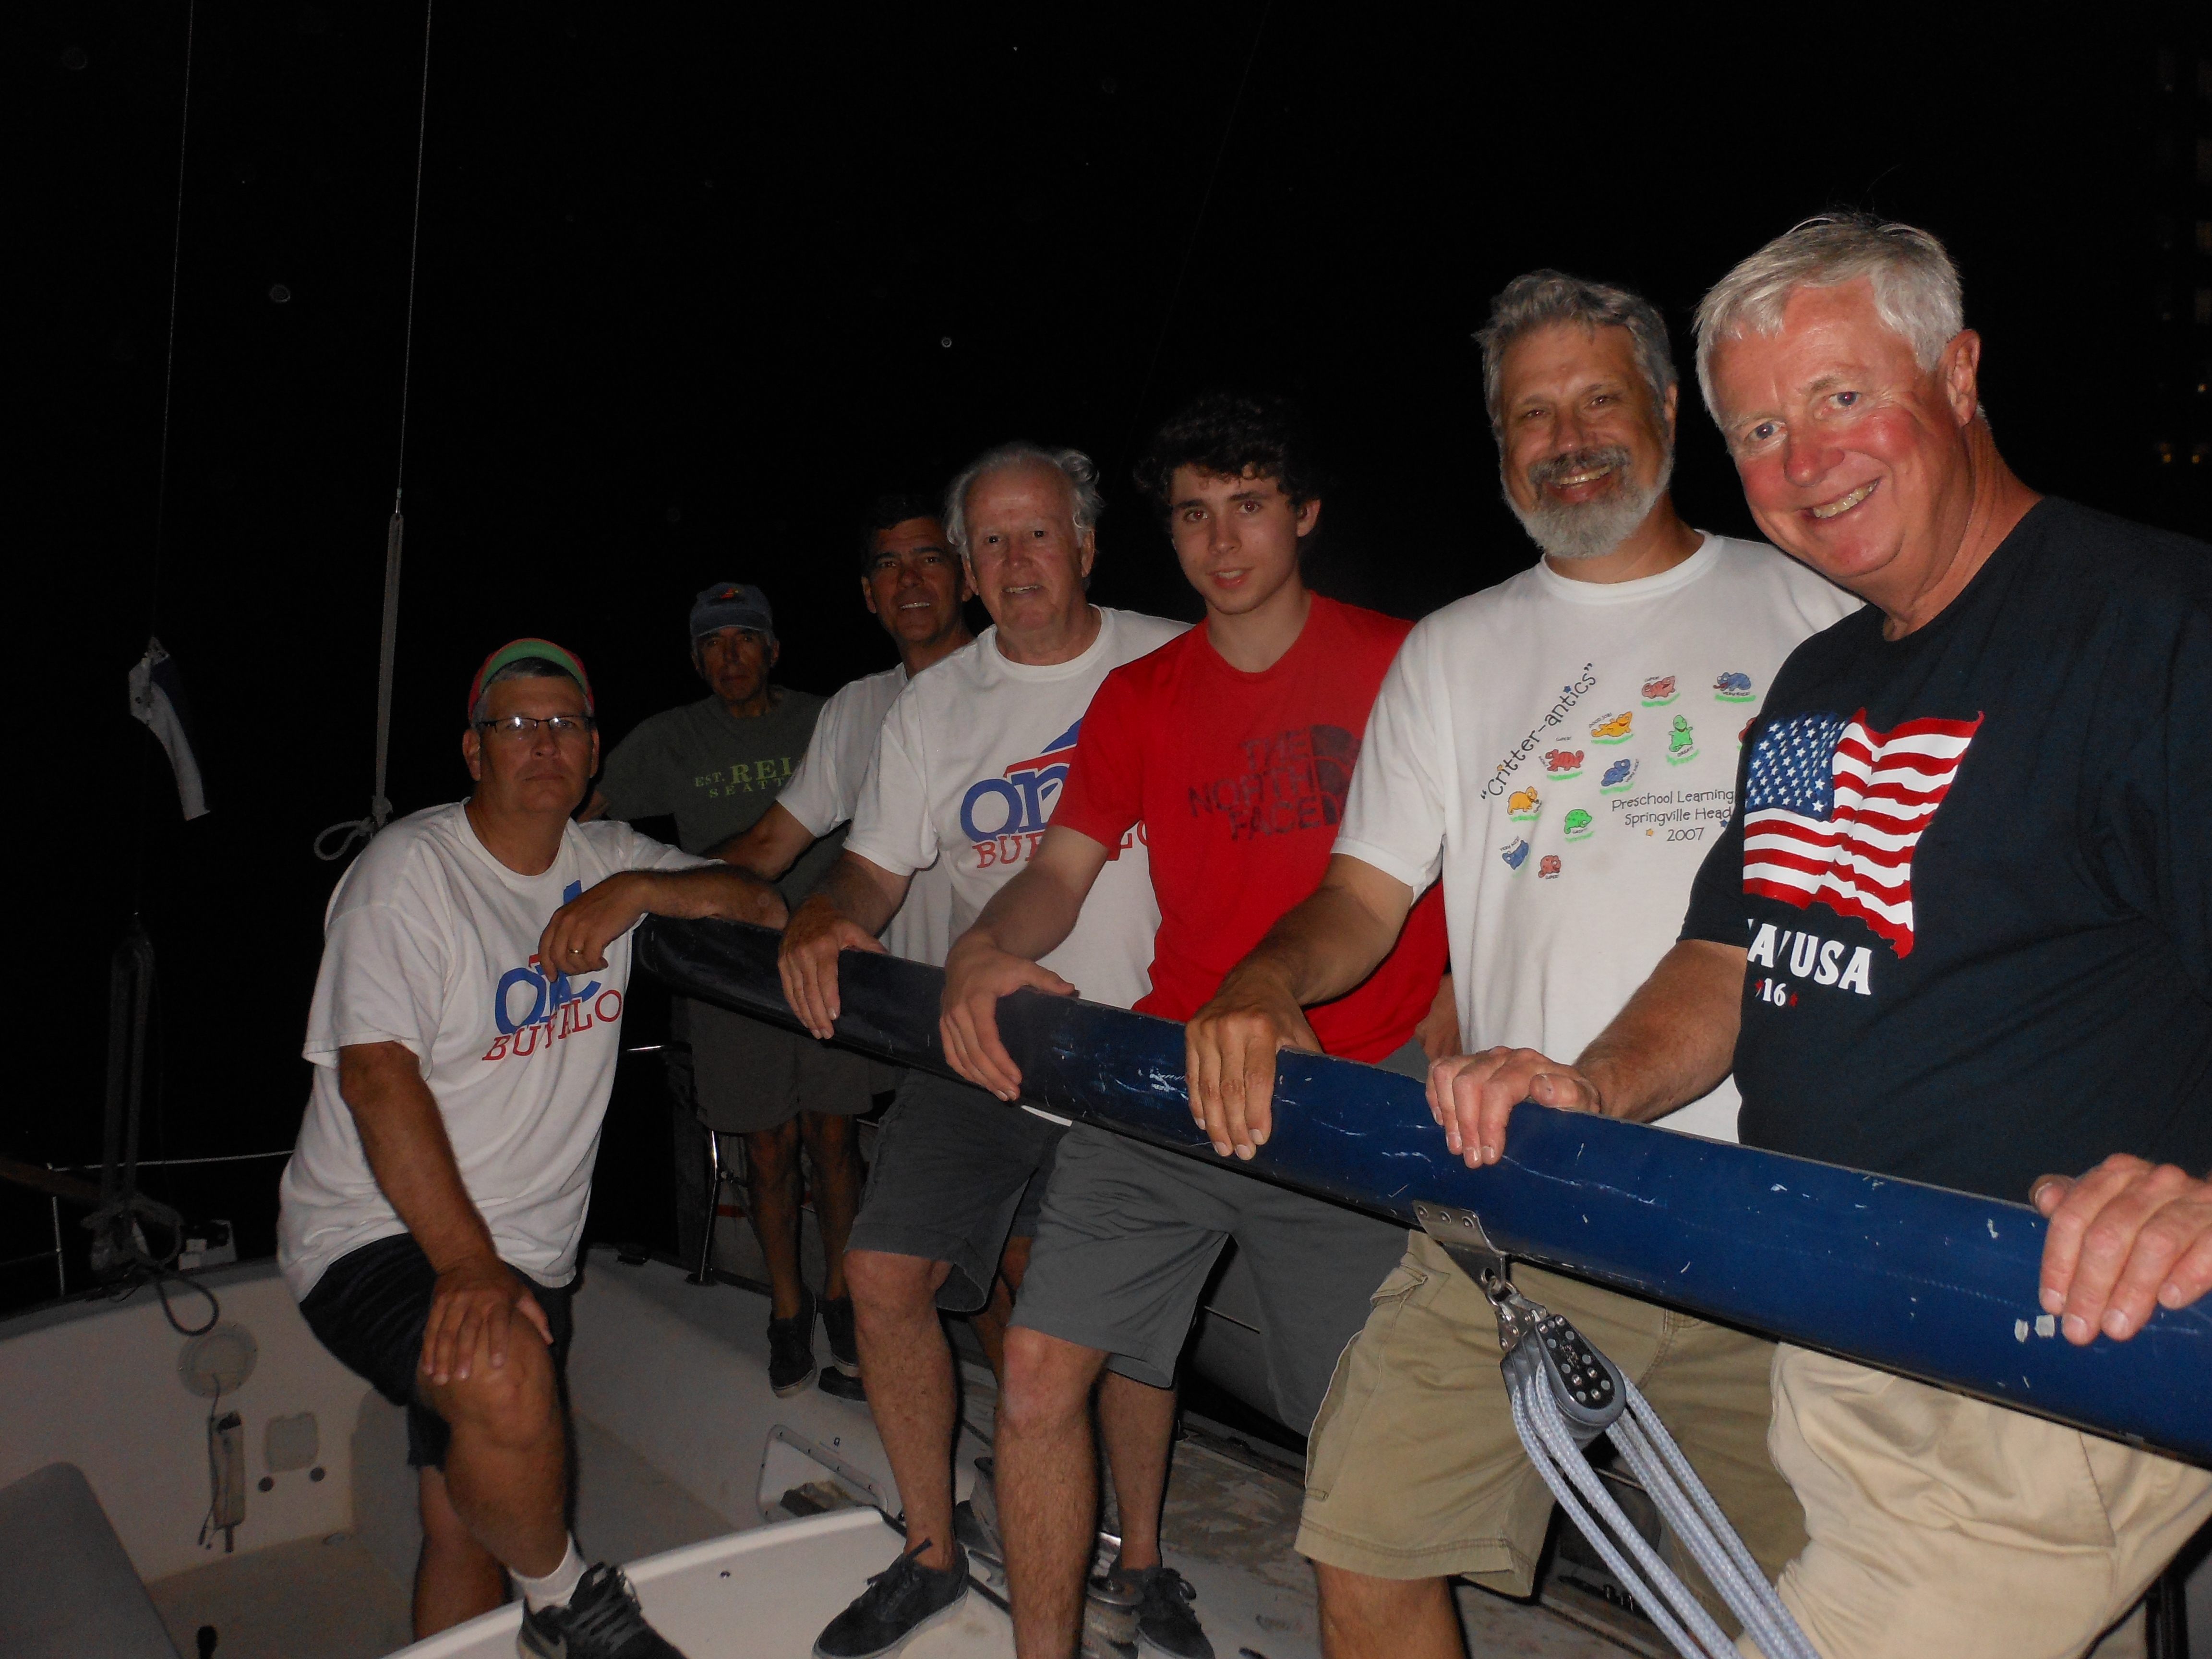 Capt. Jack Mathias, at right, with his sailing crew after a Wednesday-night competition out of RCR Yachts at Skyway Marina. Holding the boom, from the left, are Greg Hylkema, Ken Kahn, Tom LeBuhn, Tim O'Brien, Patrick Hylkema and Bill Lewis.